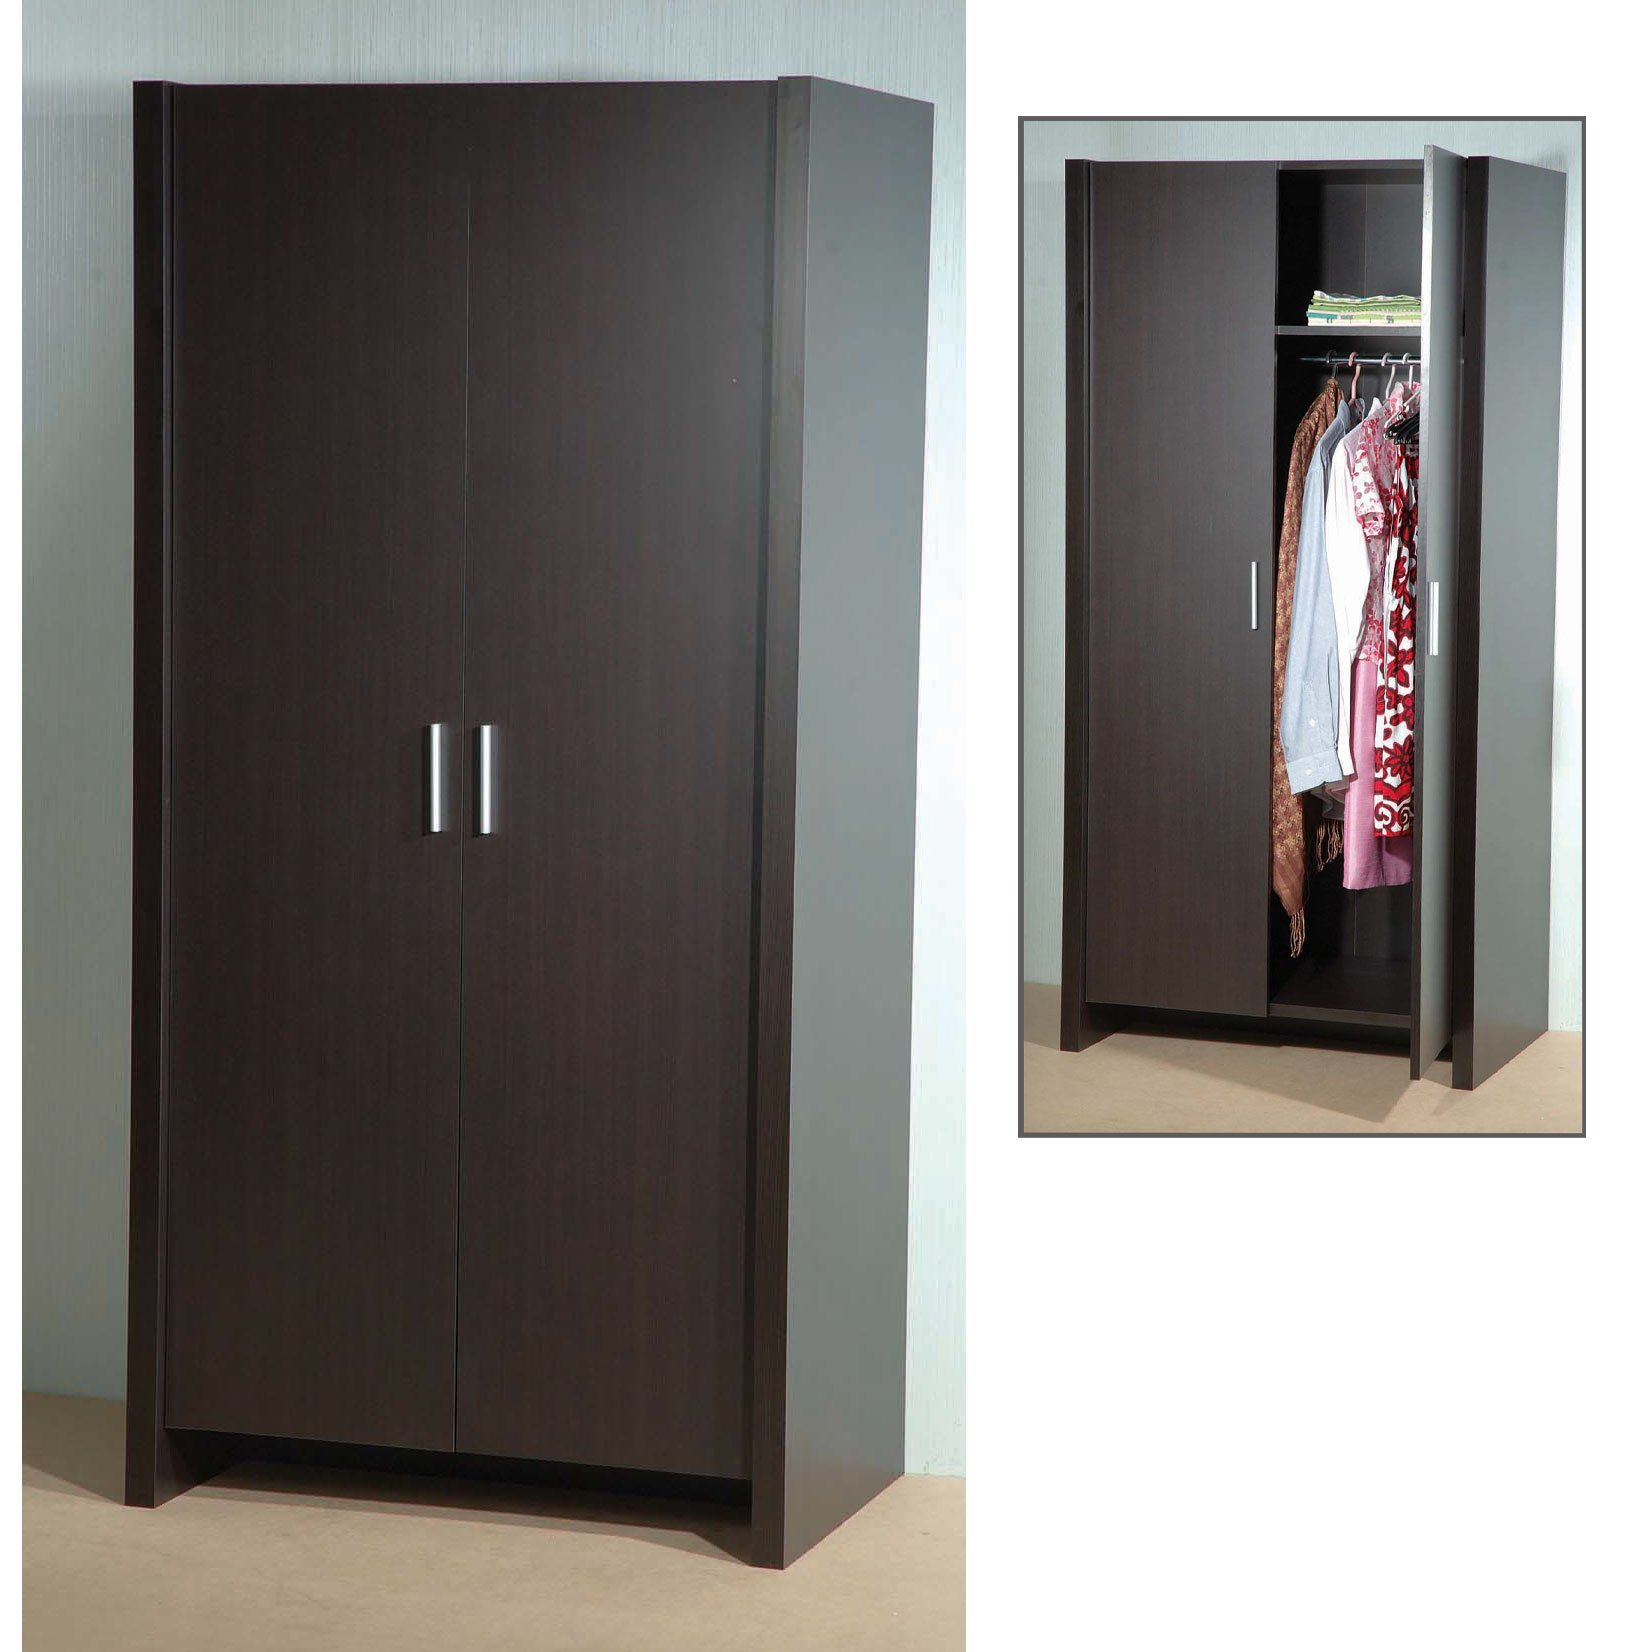 brown wooden wardrobes denv2drWD - 7 Wardrobe Essential Determining Model Quality And Functionality